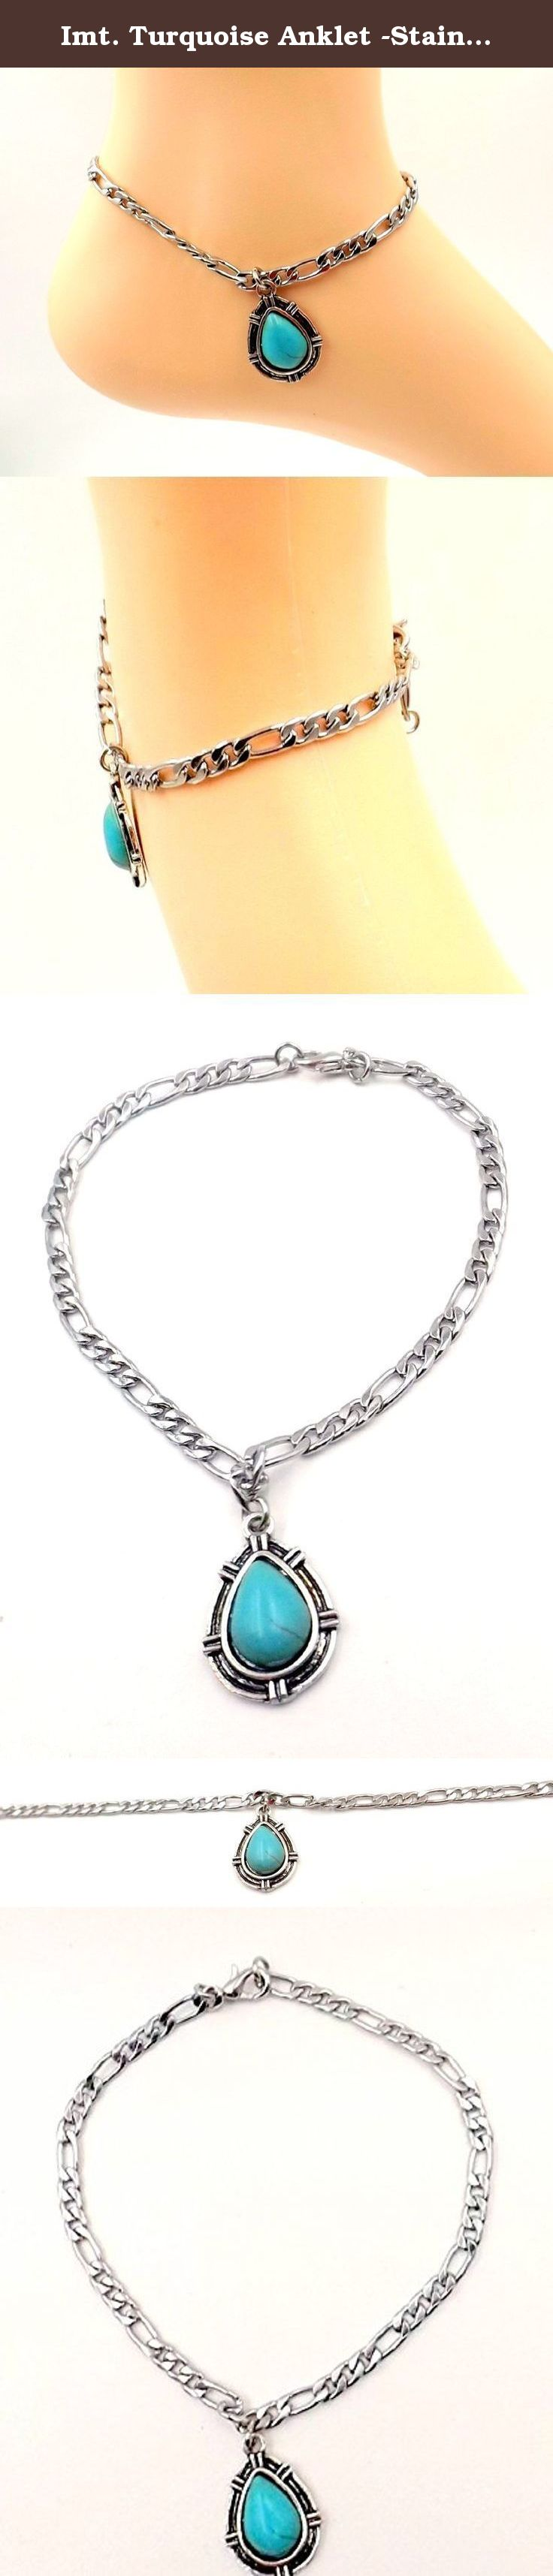 nickel sizes sterling box inch beaded station anklet silver italy italian chain free necklace